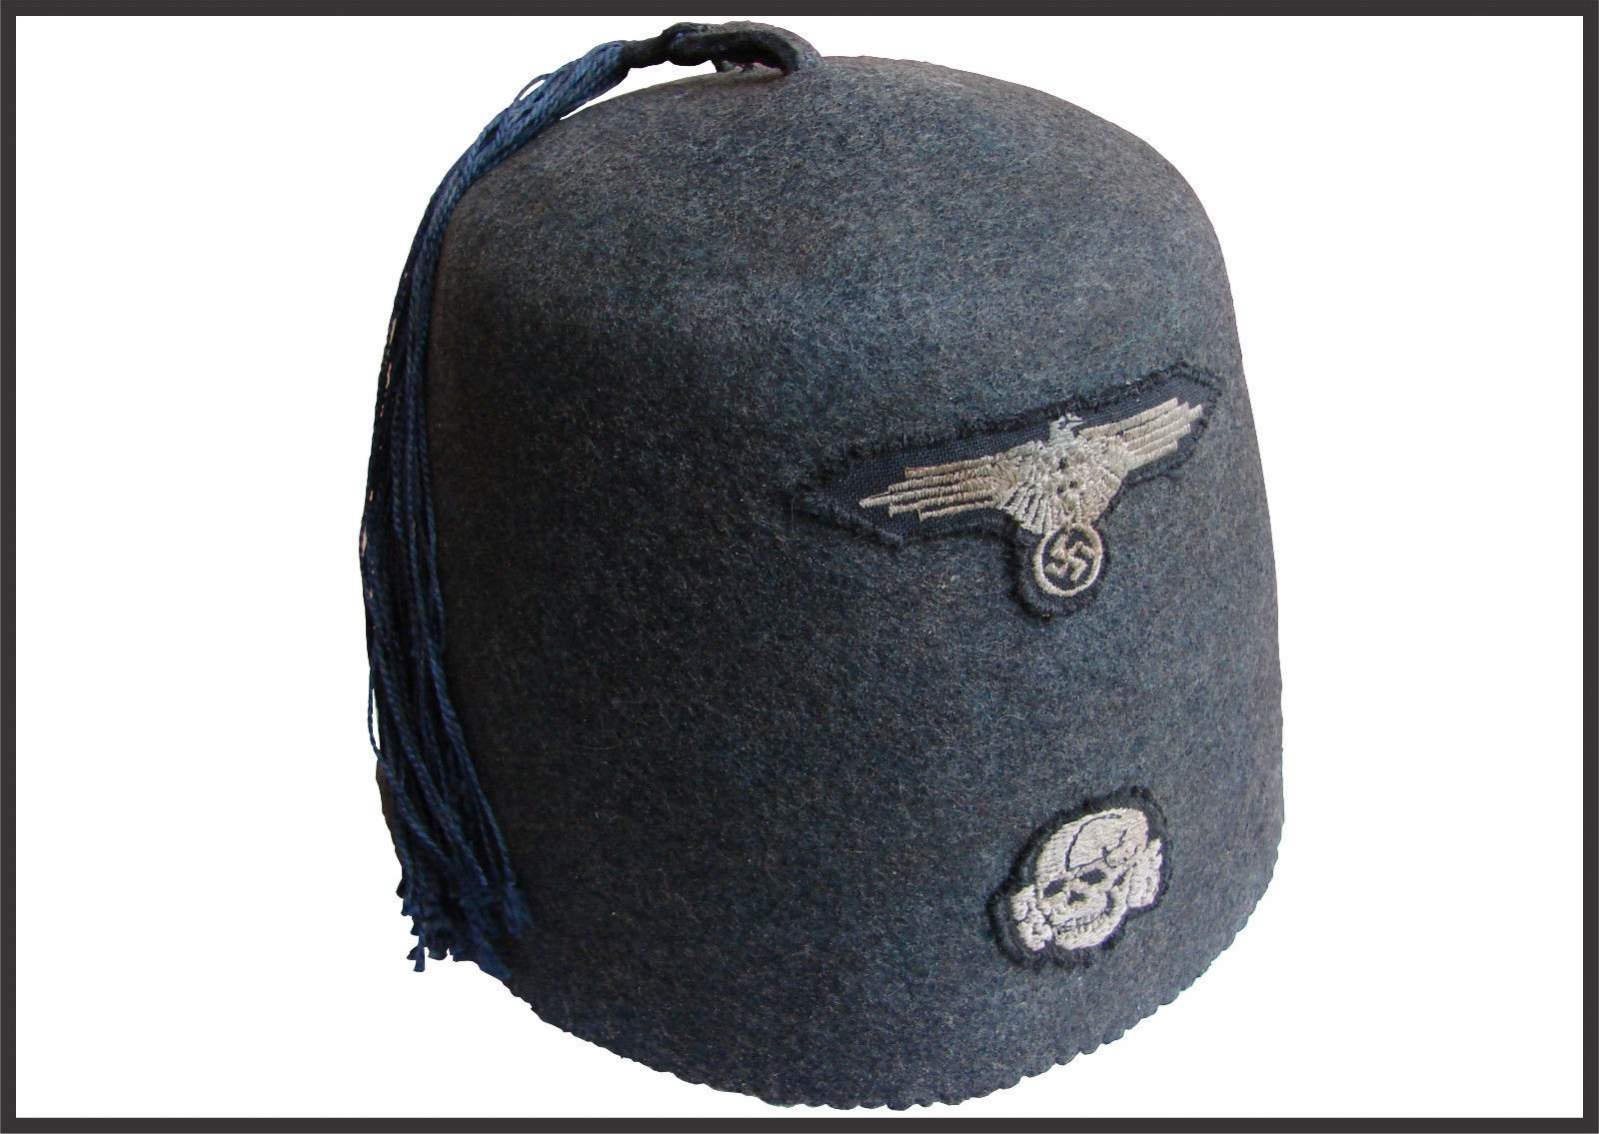 SALE WWII Handschar Division Fez 13th Waffen SS 13th division German  extremely rare 1586daa51ab